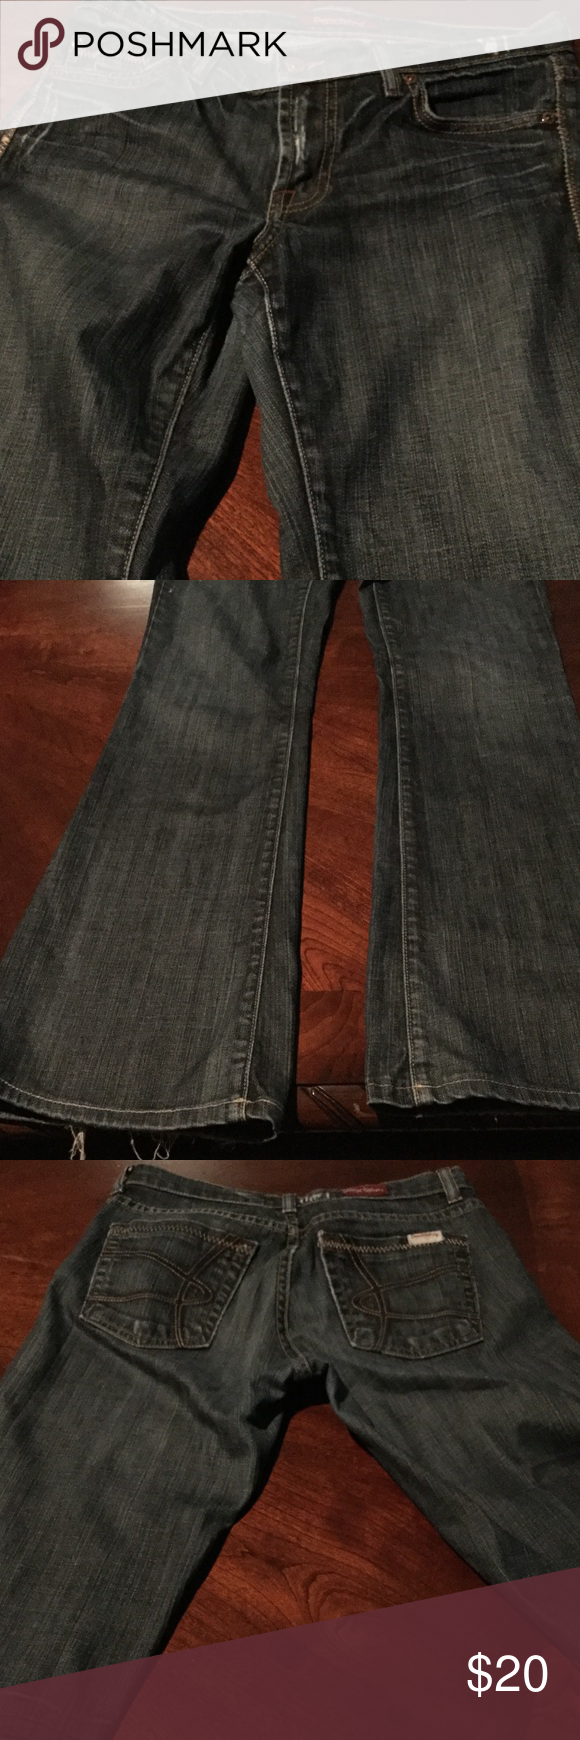 David Kahn boot cut jeans David Kahn boot cut jeans are very cute with design on back pocket and the jeans has some fraying on the end which gives them more of a edgy look!! A size 27 and very sexy pair of jeans!!! David Kahn Jeans Boot Cut